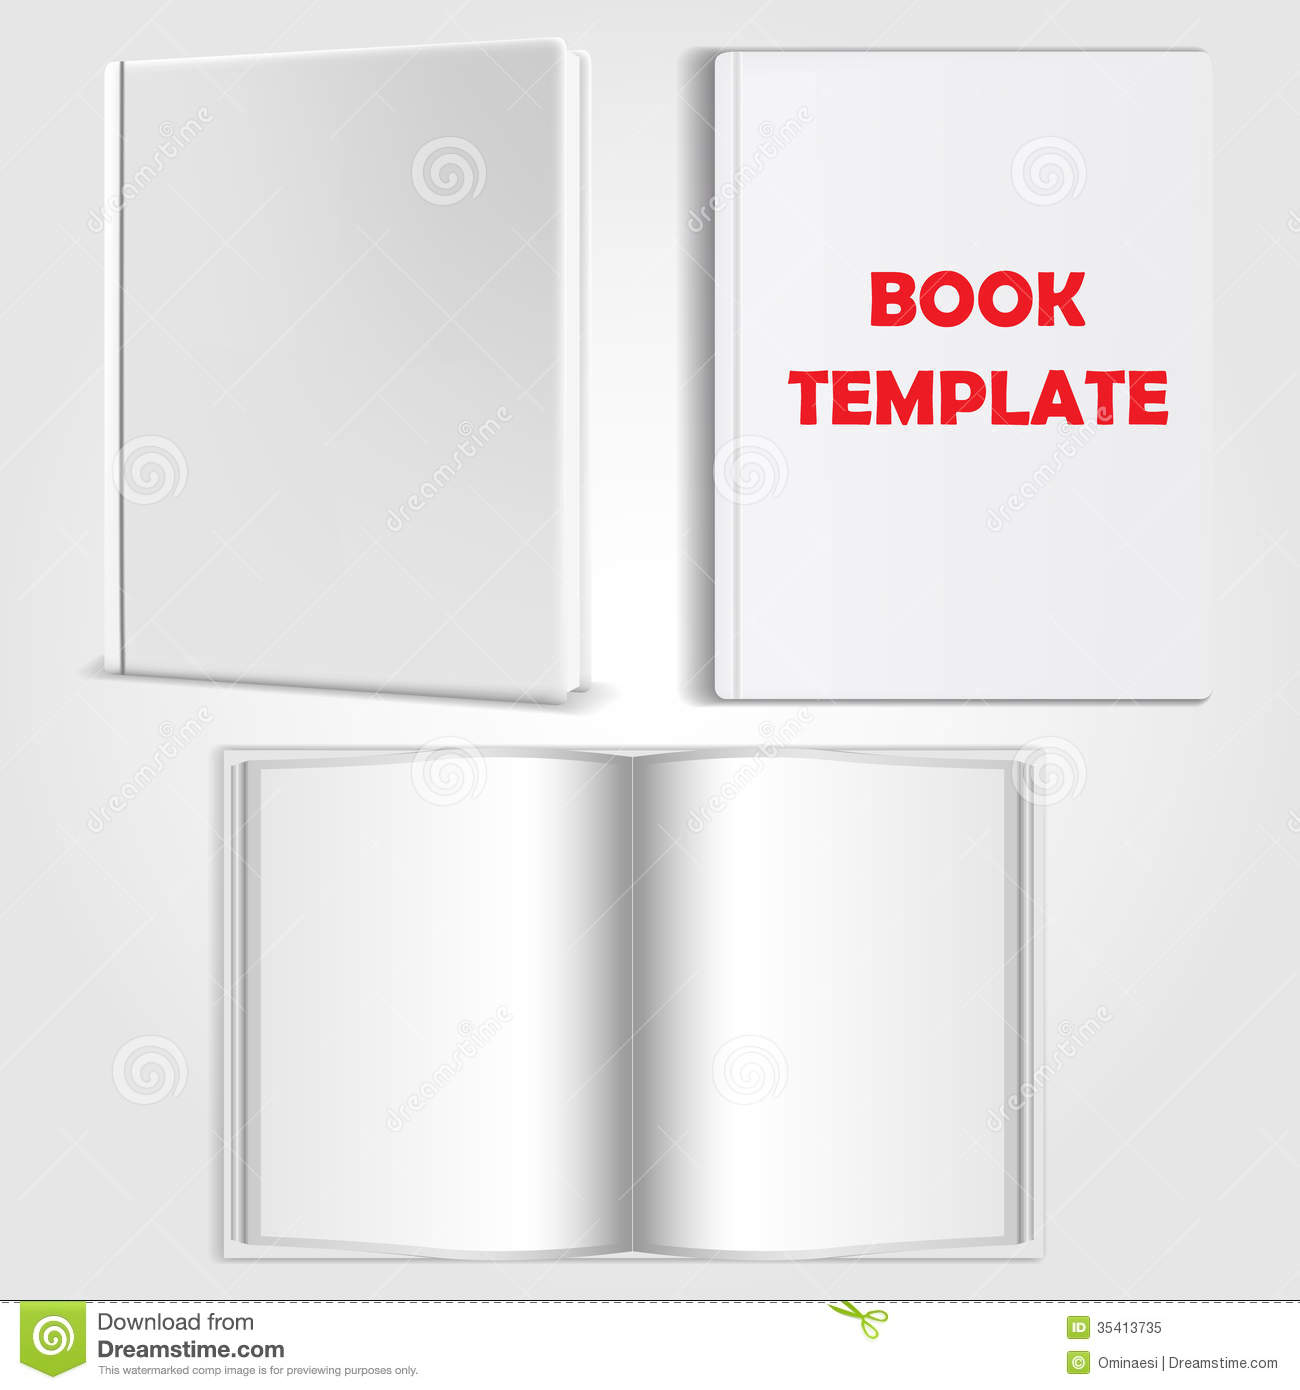 Book Template Vector